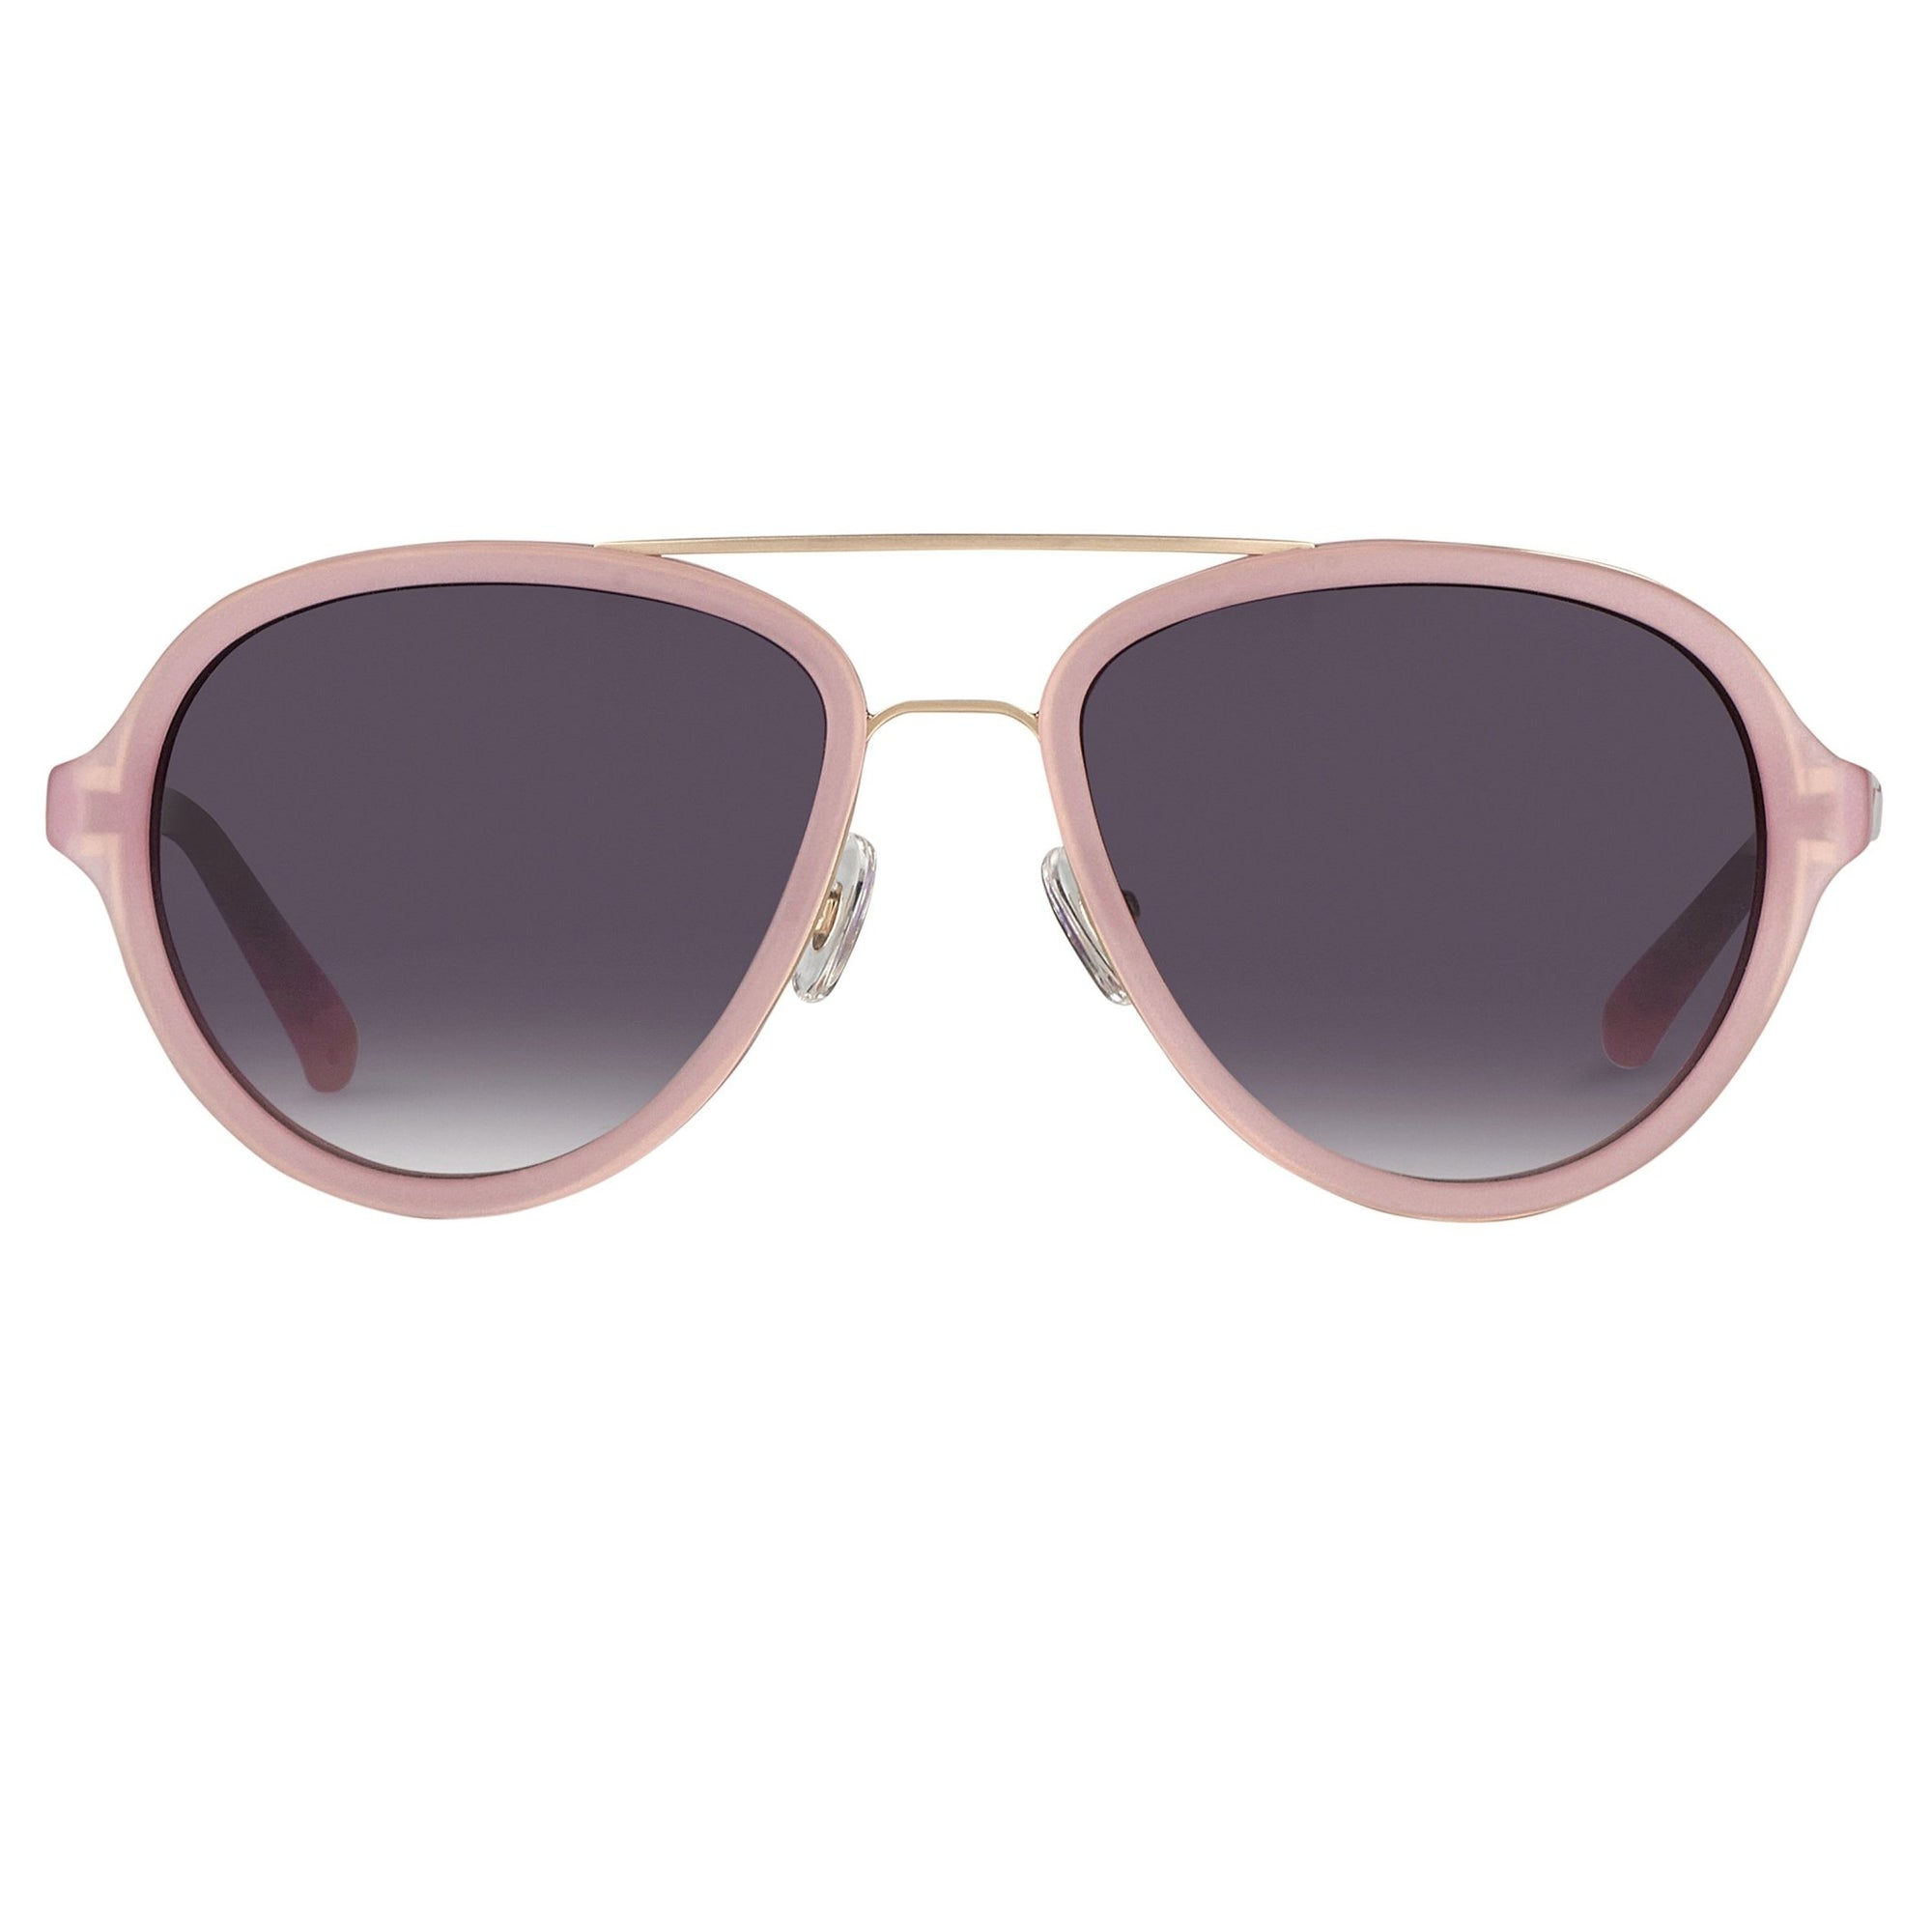 Phillip Lim Sunglasses Pink Brushed Gold and Grey Graduated Lenses Category 3 - PL16C15SUN - Watches & Crystals